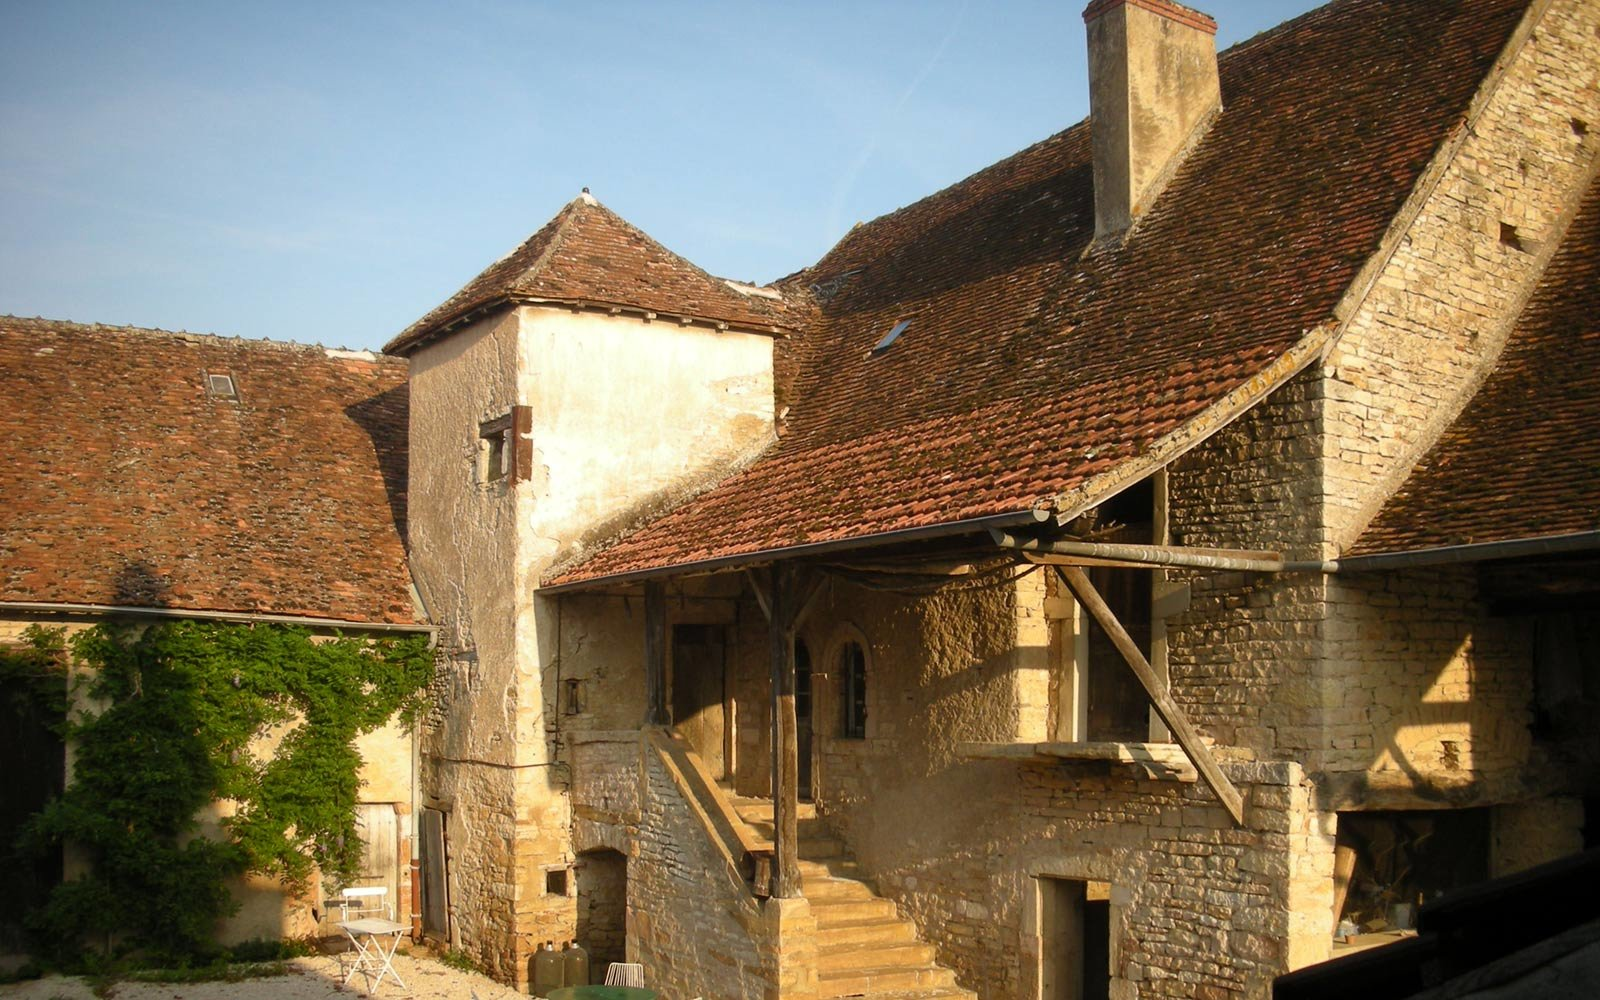 Sercy, 300 year old farmhouse in French wine country